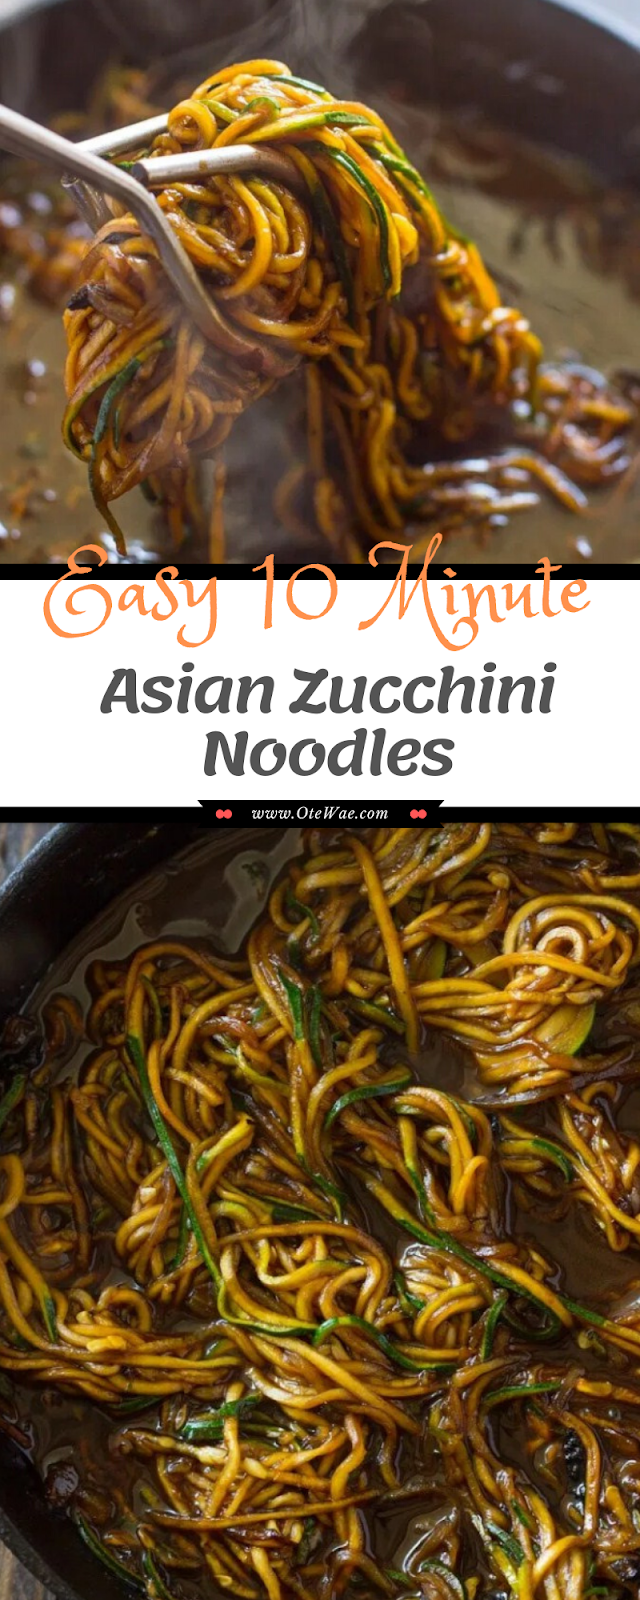 Easy 10 Minute Asian Zucchini Noodles